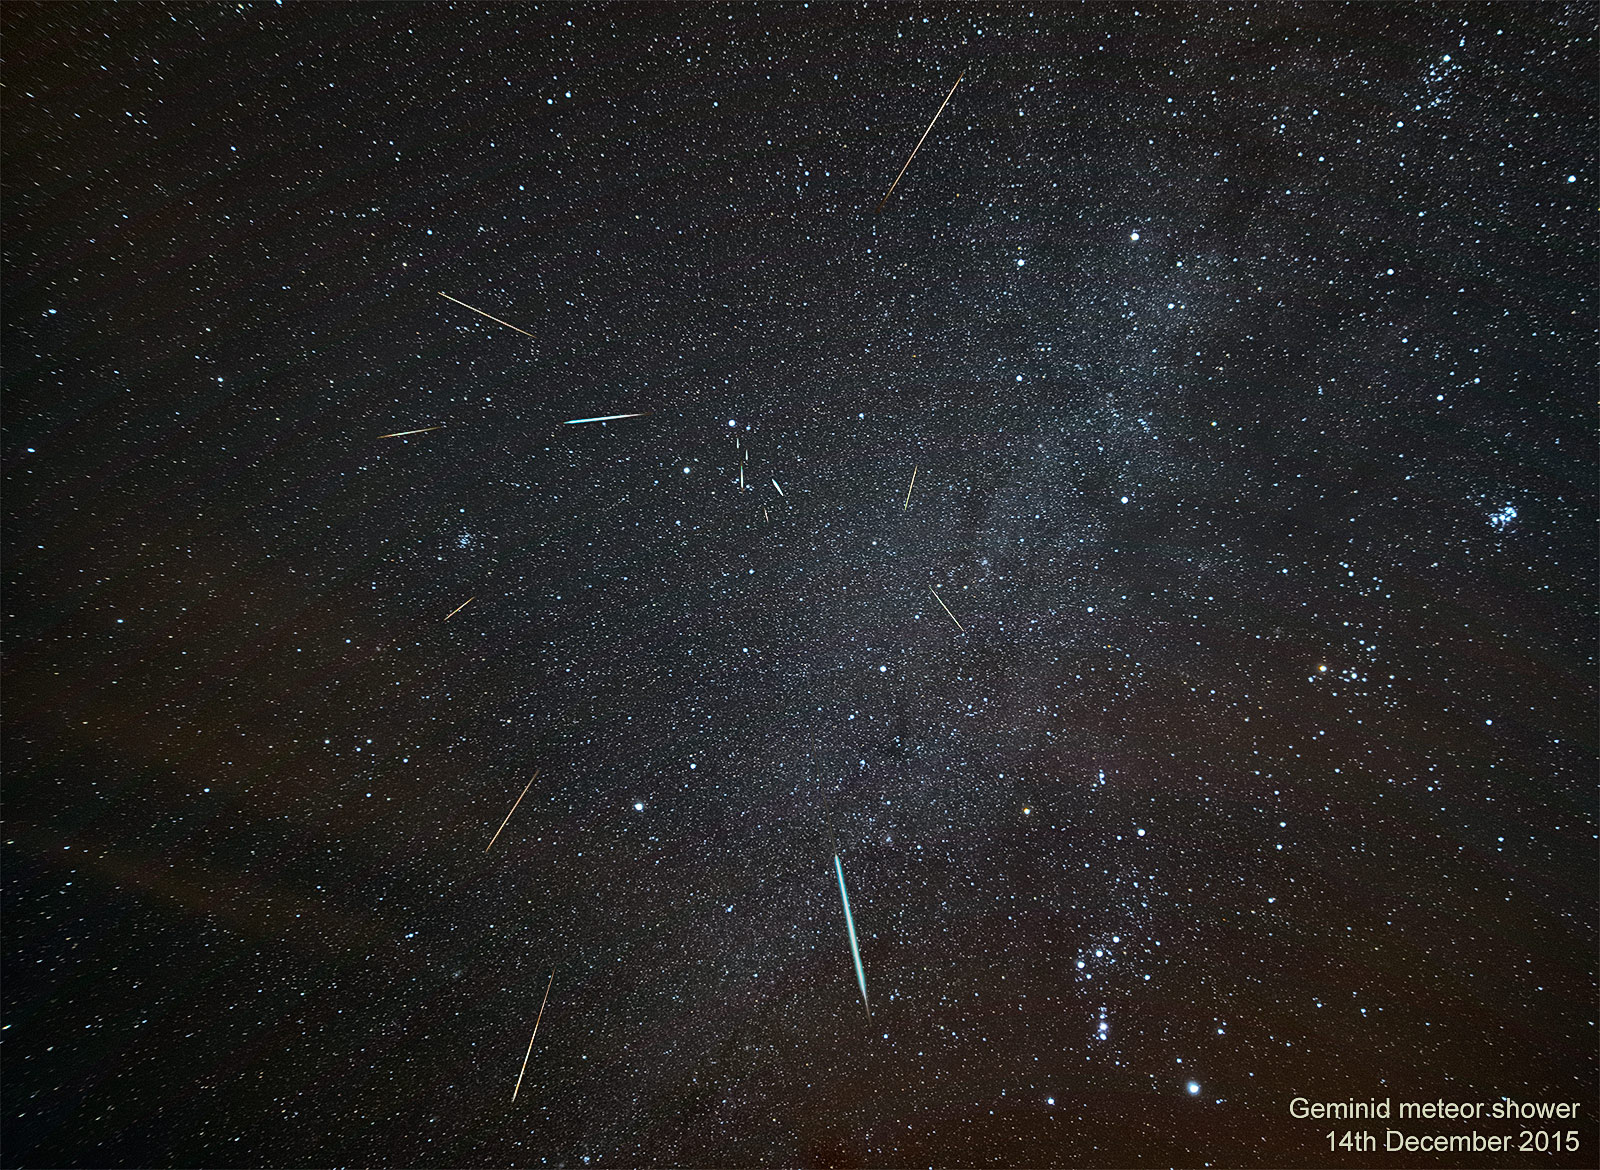 2015 Geminid Meteor Shower by Kevin Lewis